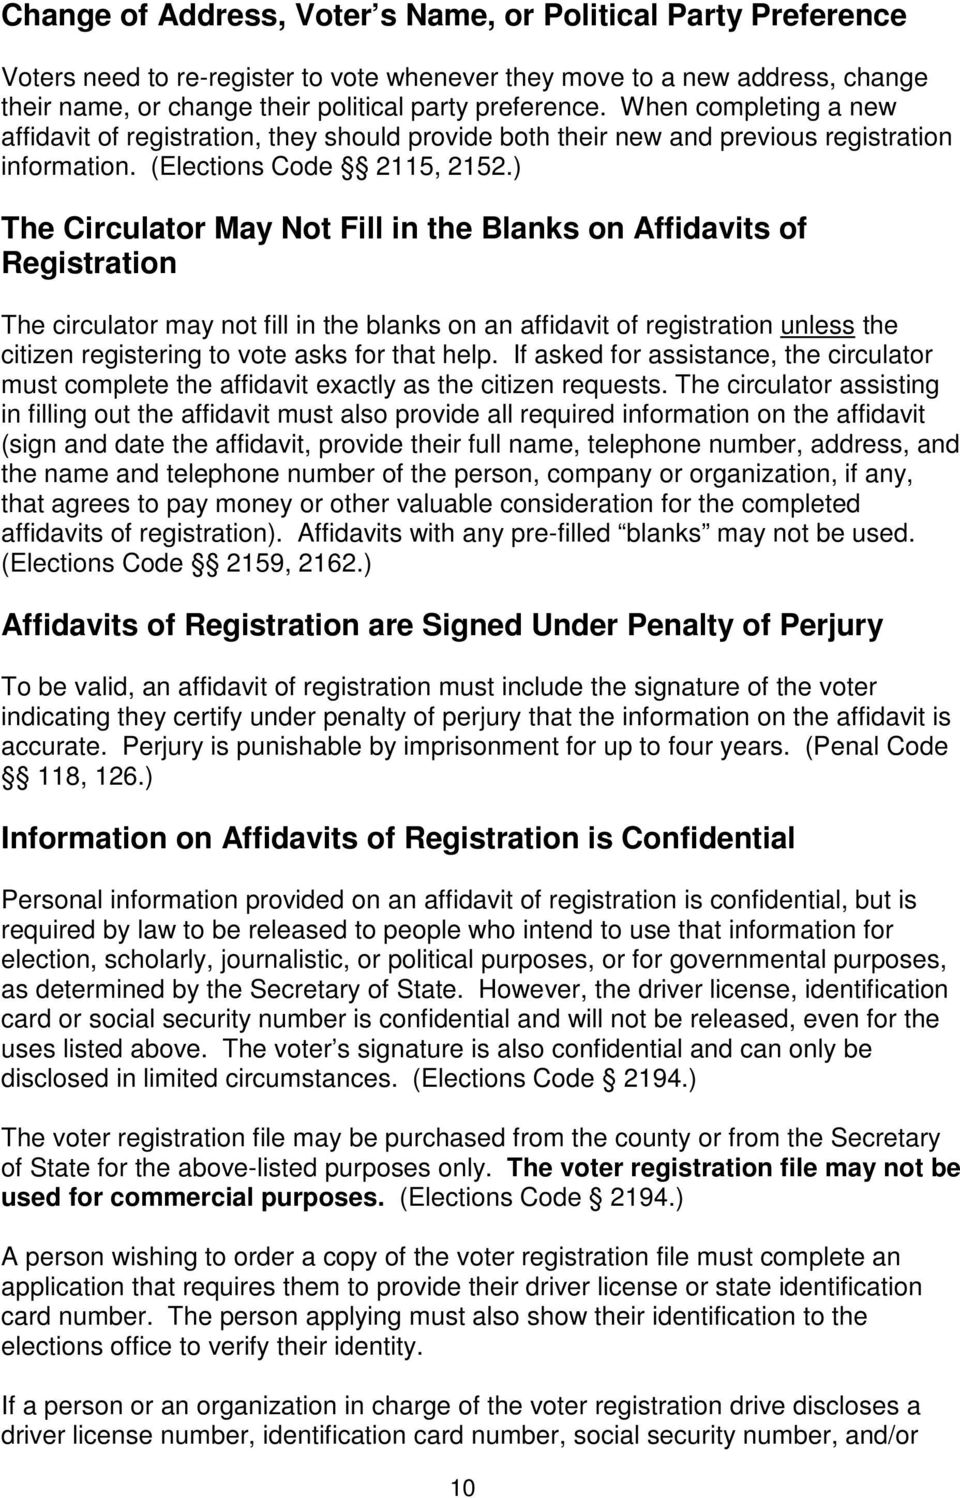 ) The Circulator May Not Fill in the Blanks on Affidavits of Registration The circulator may not fill in the blanks on an affidavit of registration unless the citizen registering to vote asks for